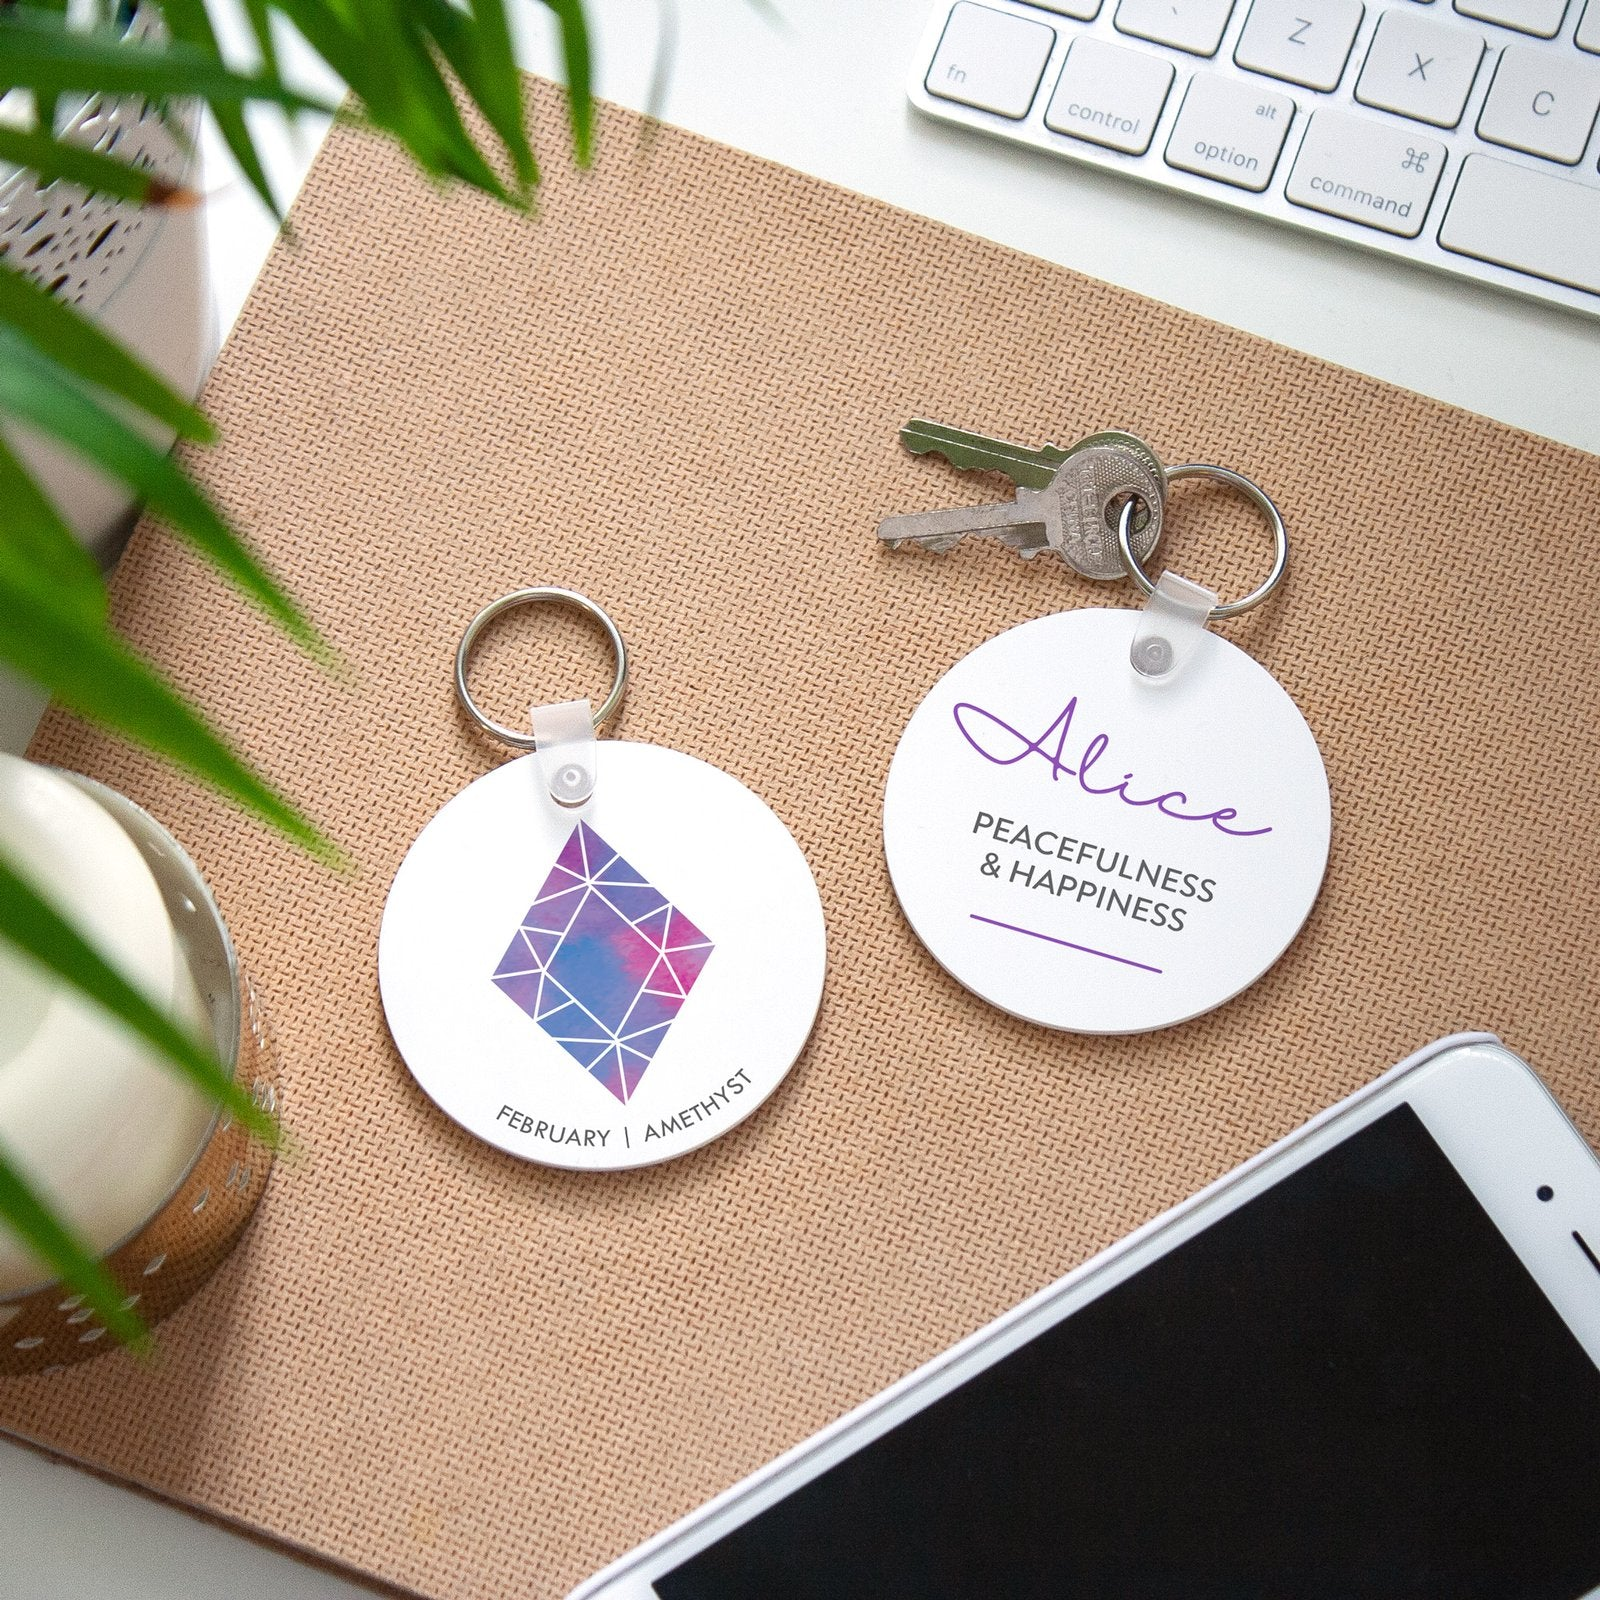 February birth month birthday personalised affordable keyring gift